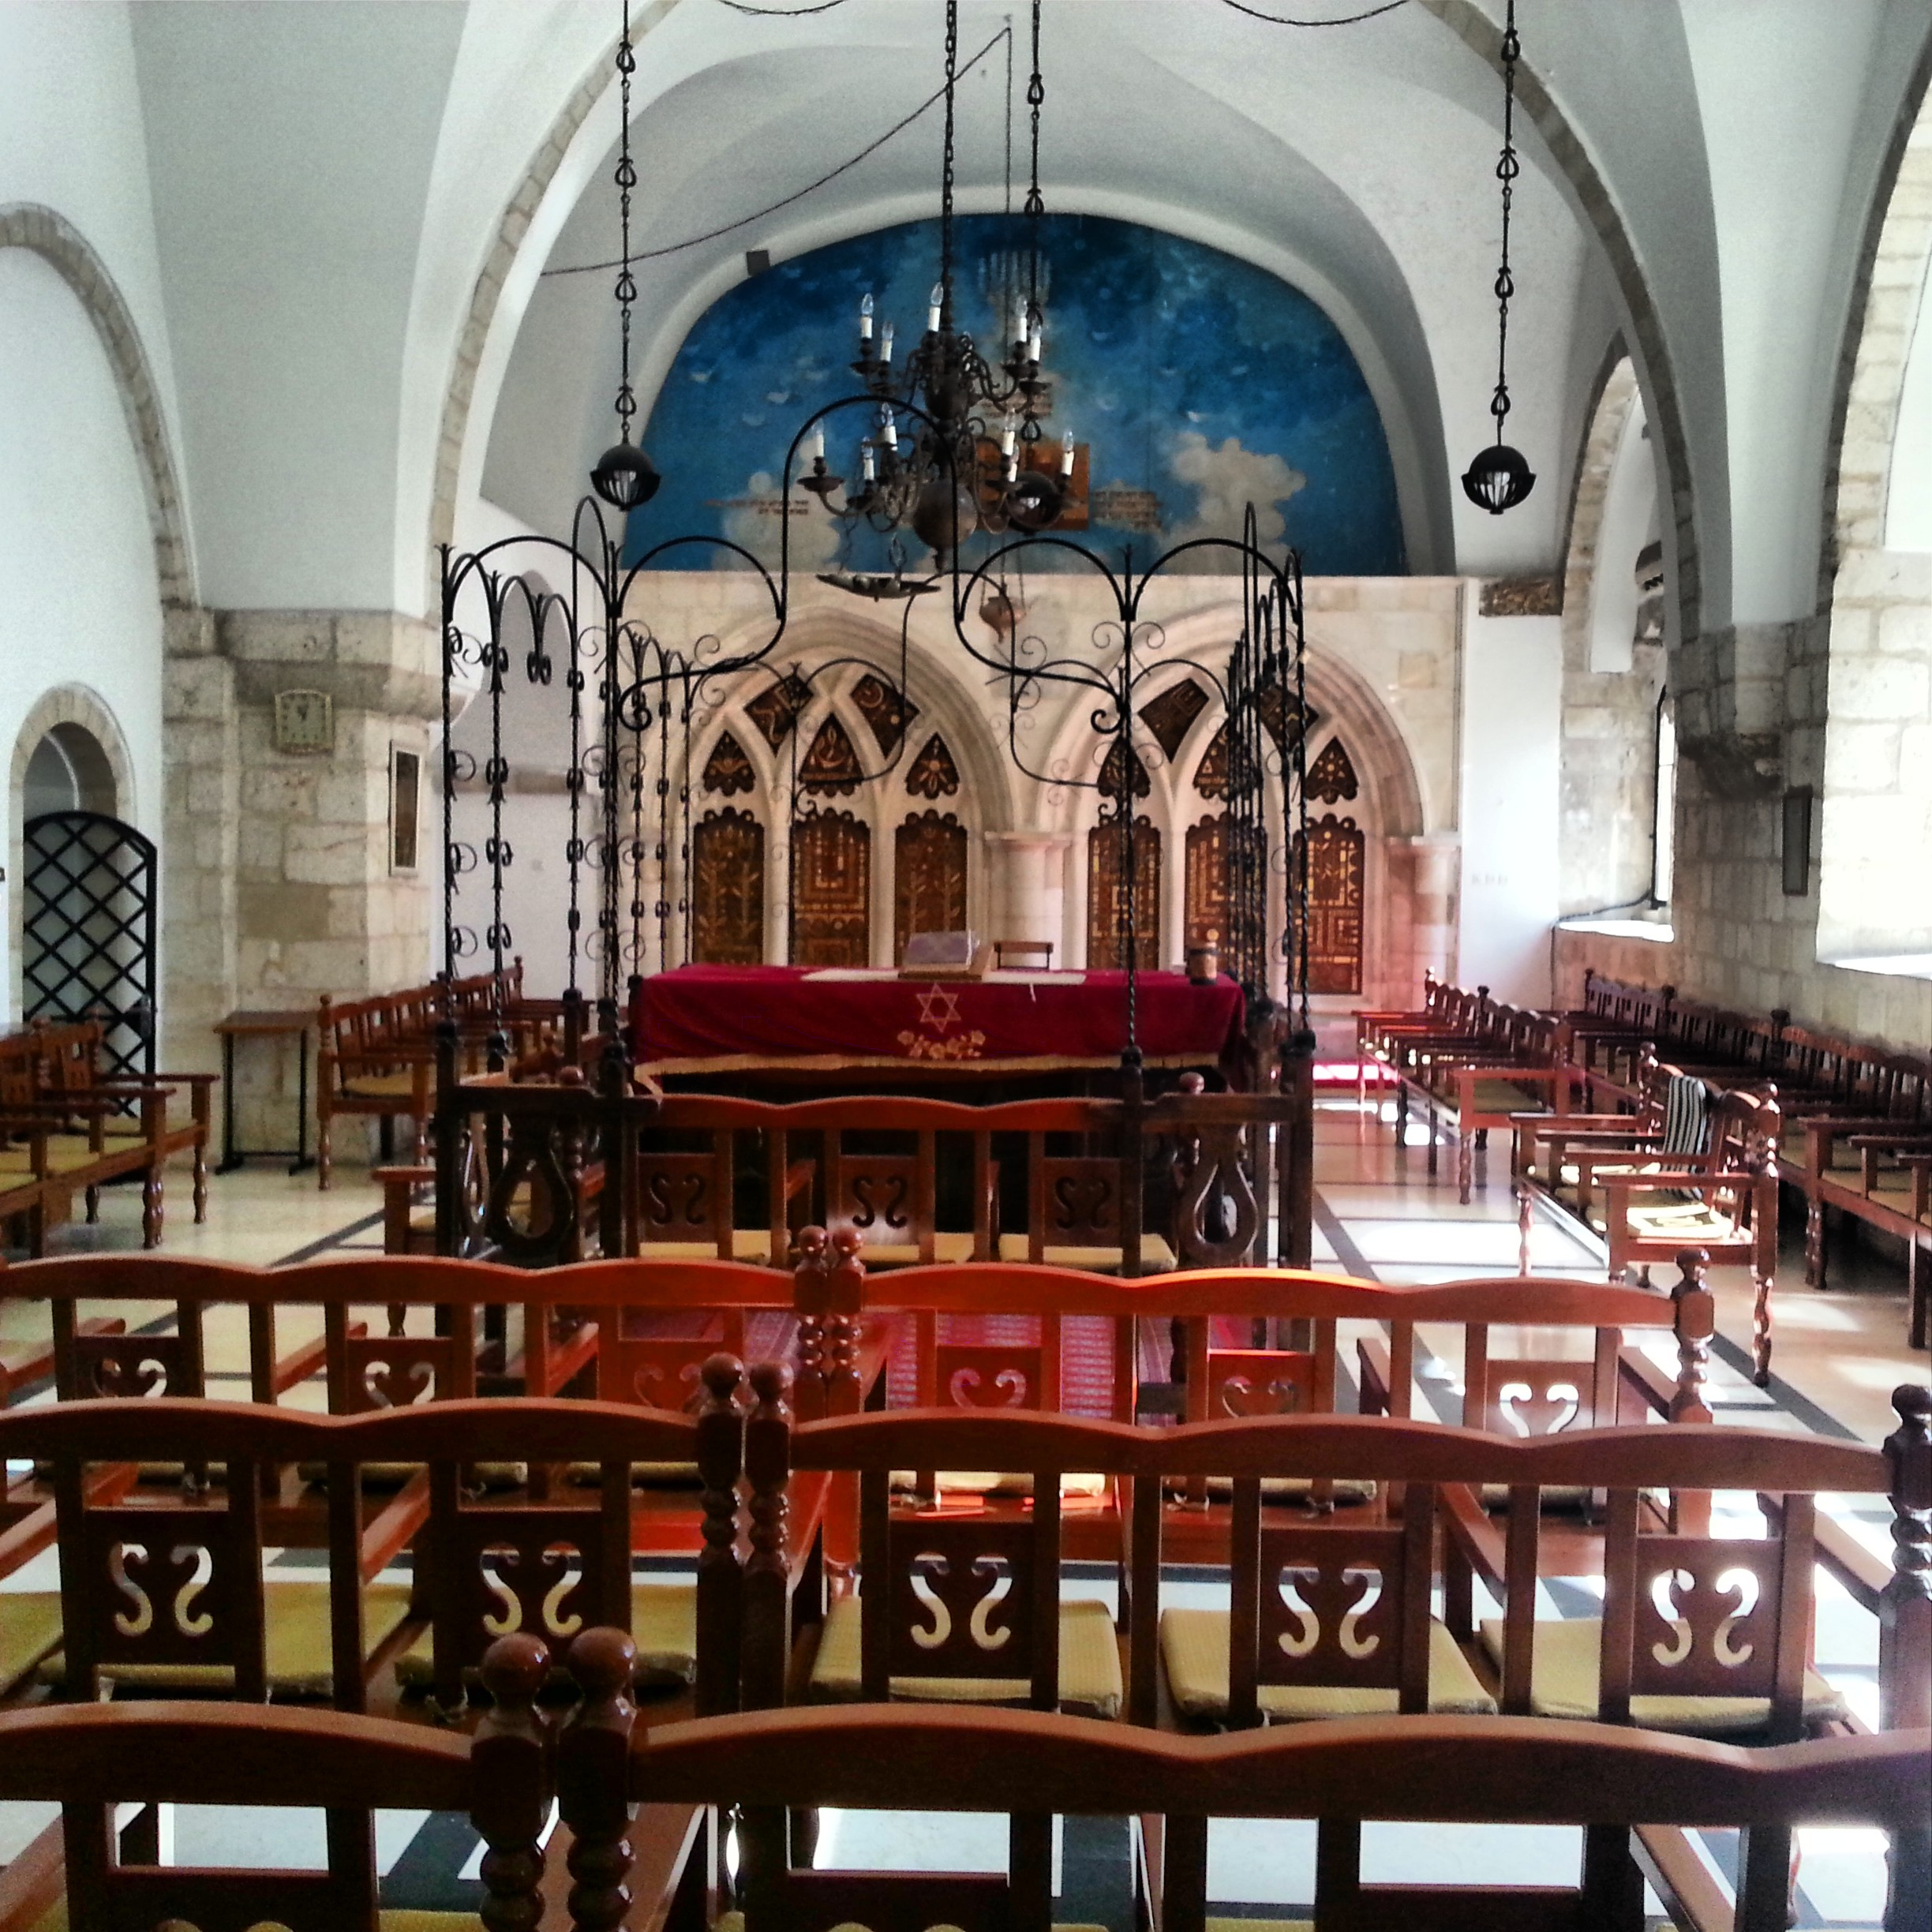 Yochanan ben Zakai Synagogue (part of the 'Four Sephardi Synagogues' complex)